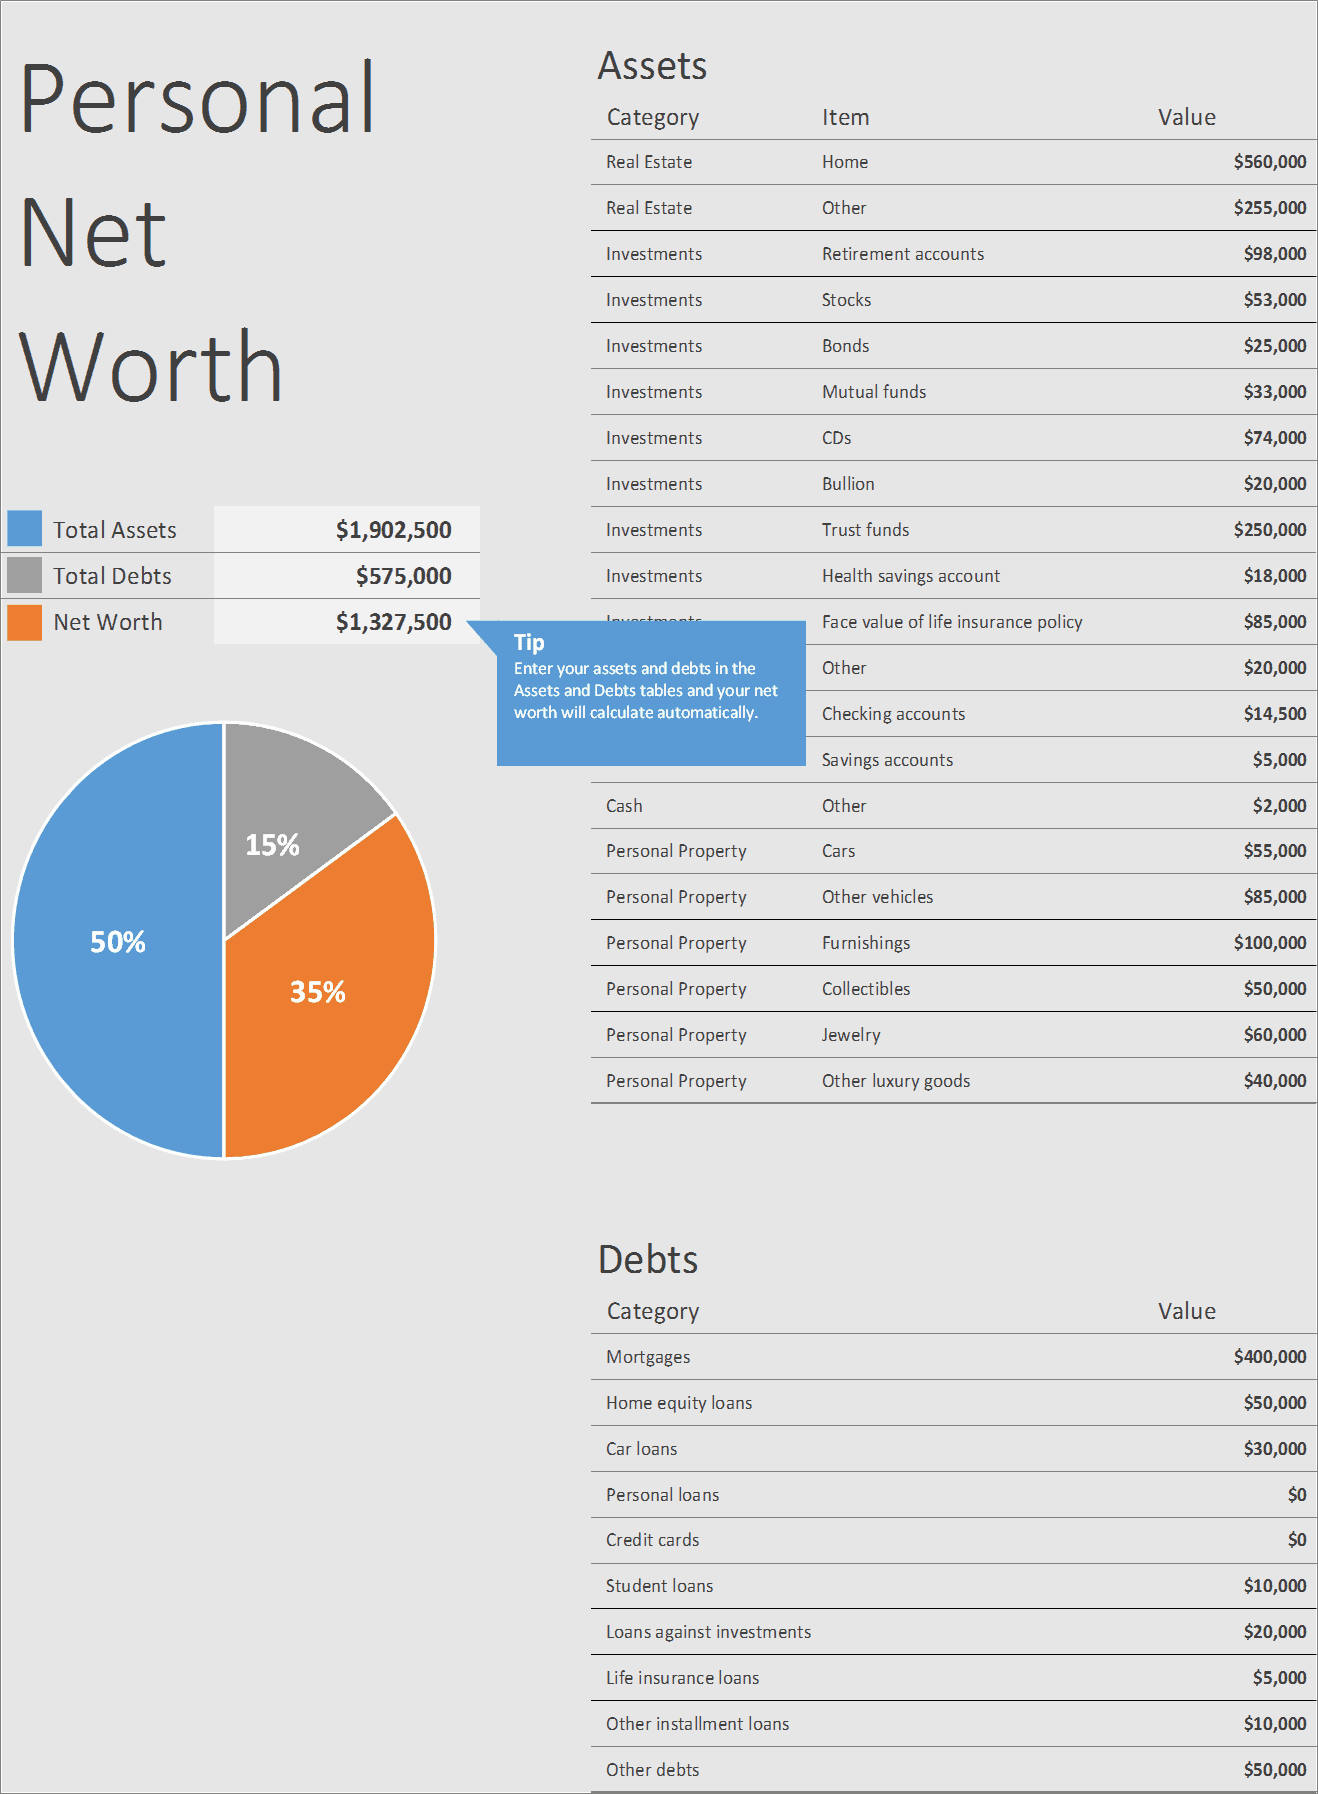 Worksheet To Calculate Worth